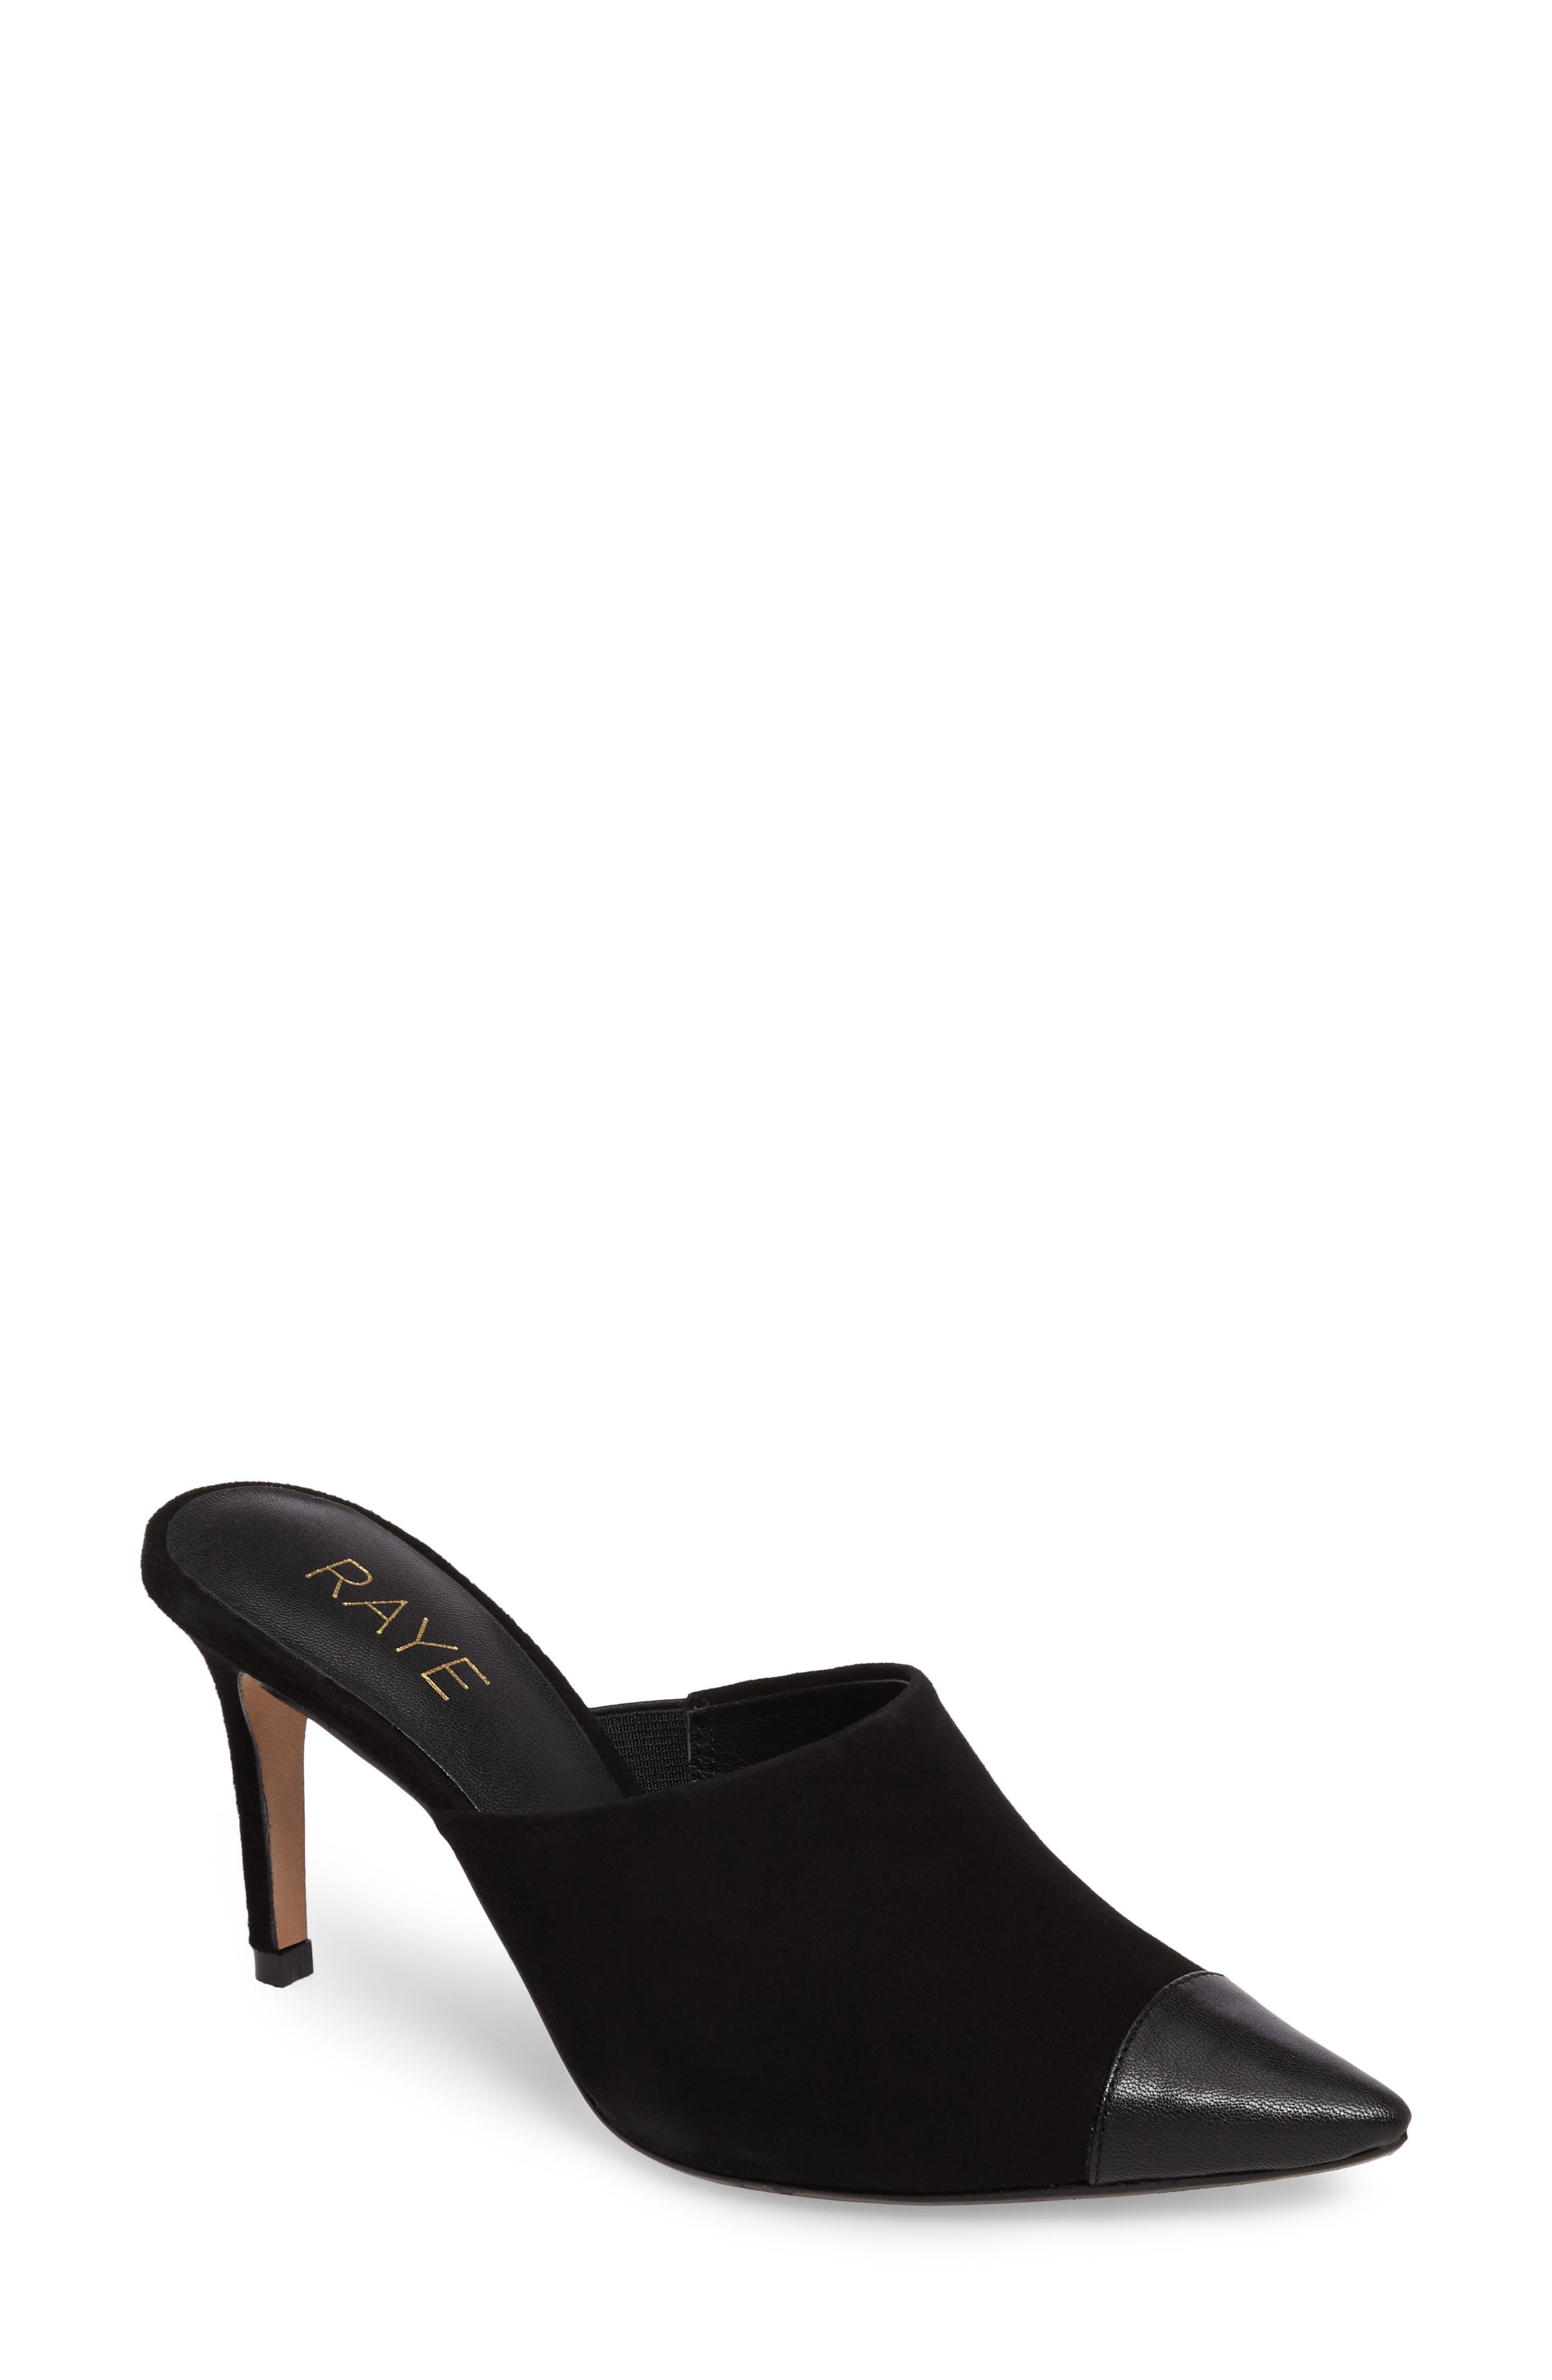 Alternate Image 1 Selected - RAYE Phoebe Cap Toe Mule (Women)